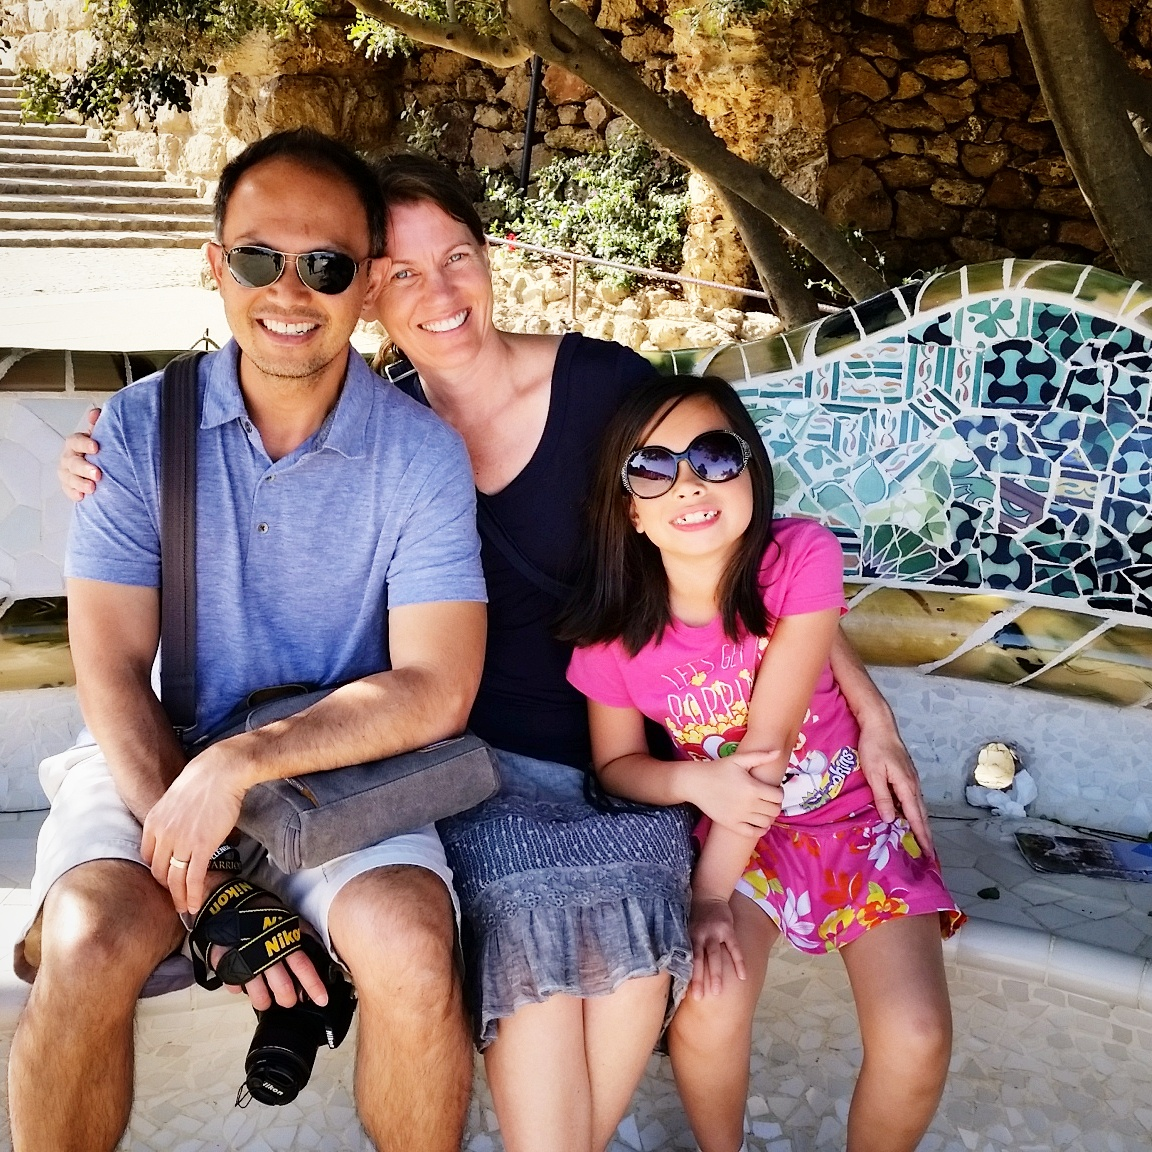 Meet the Team - We are Homer, Julie and Mag, a multicultural family of three currently set in the Midwest region of the United States. But we haven't always been here. And we don't always stay here...Get to know us →